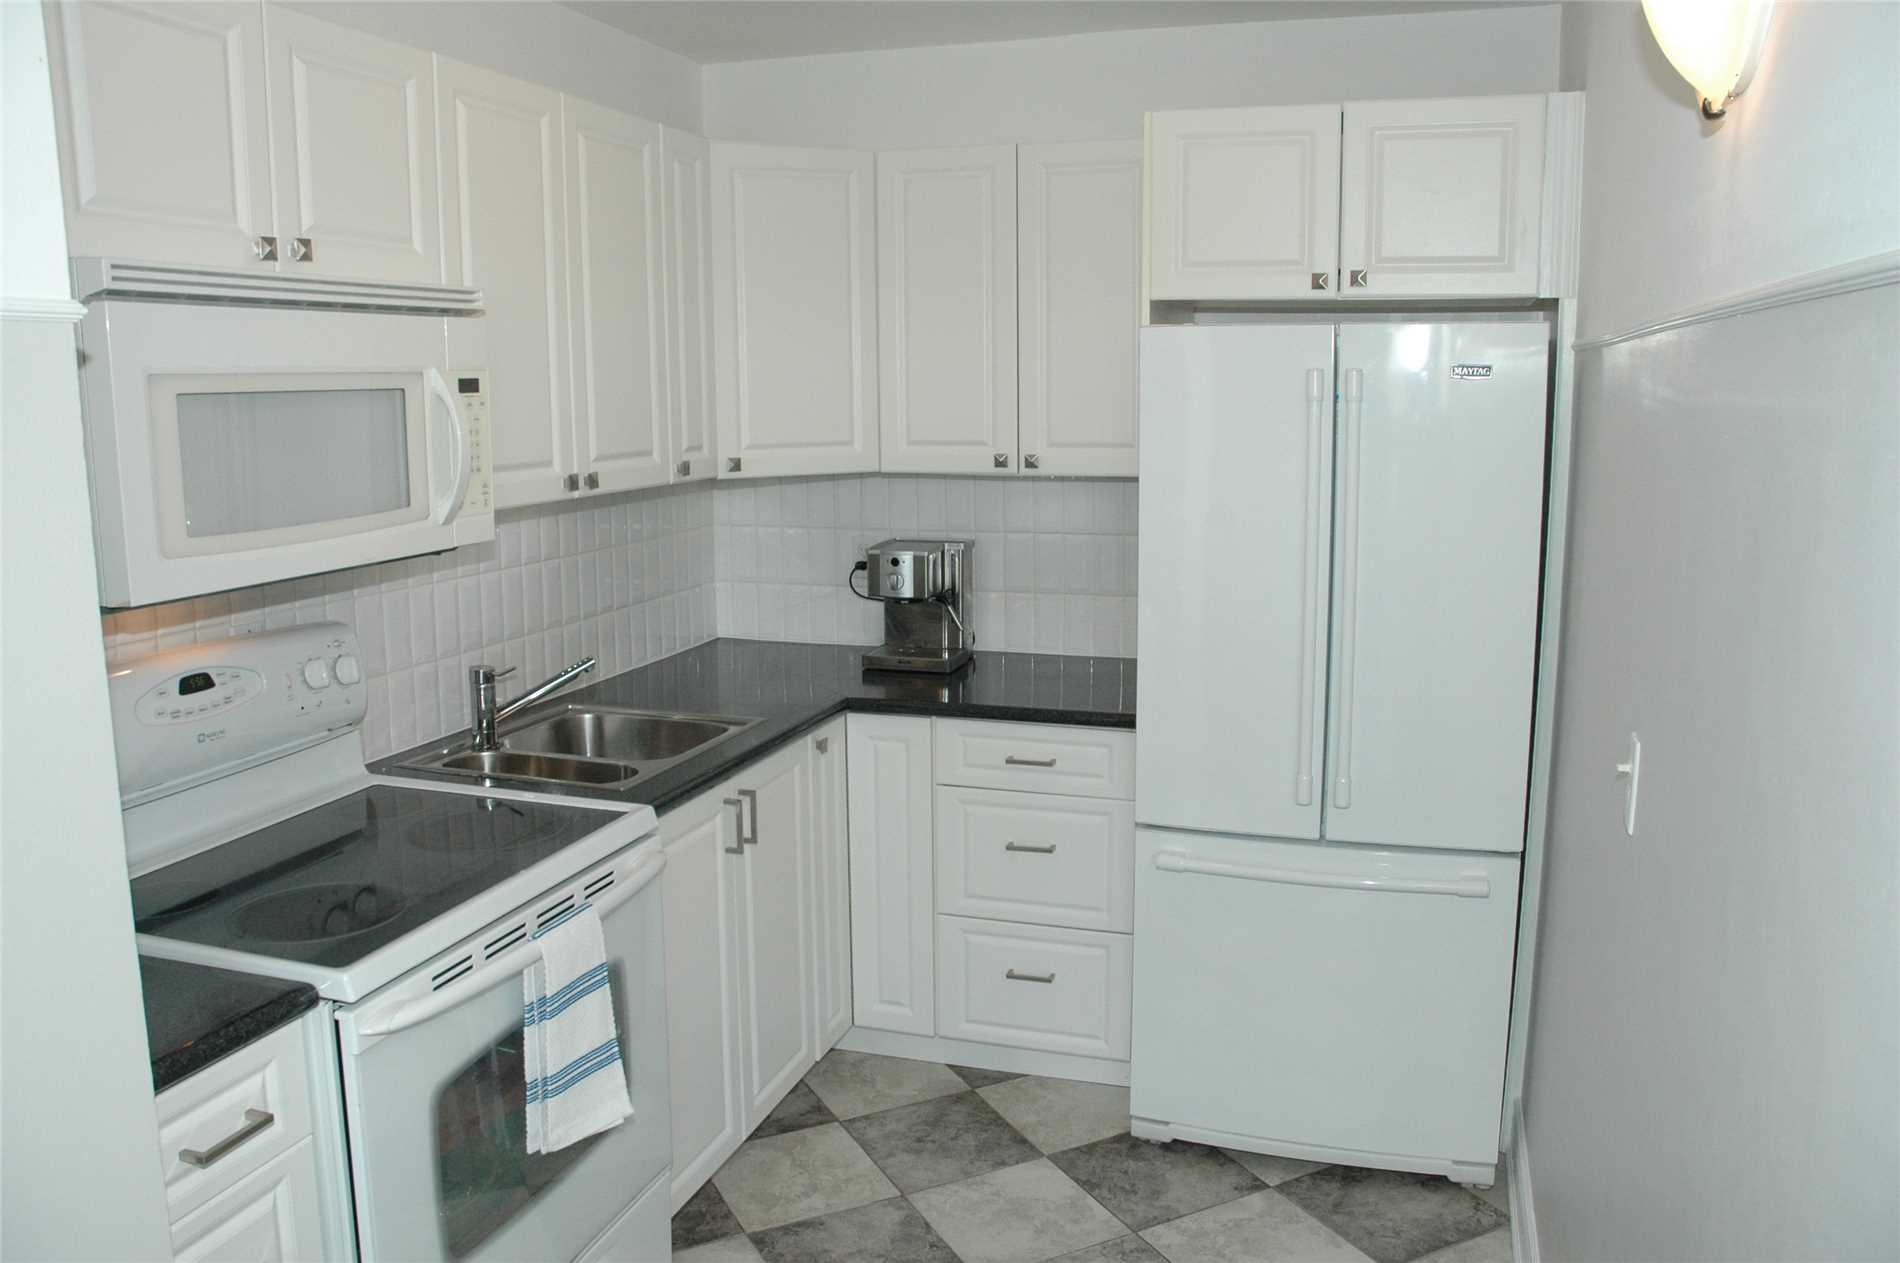 #903 - 3145 Queen Frederica Dr, Mississauga W4404317